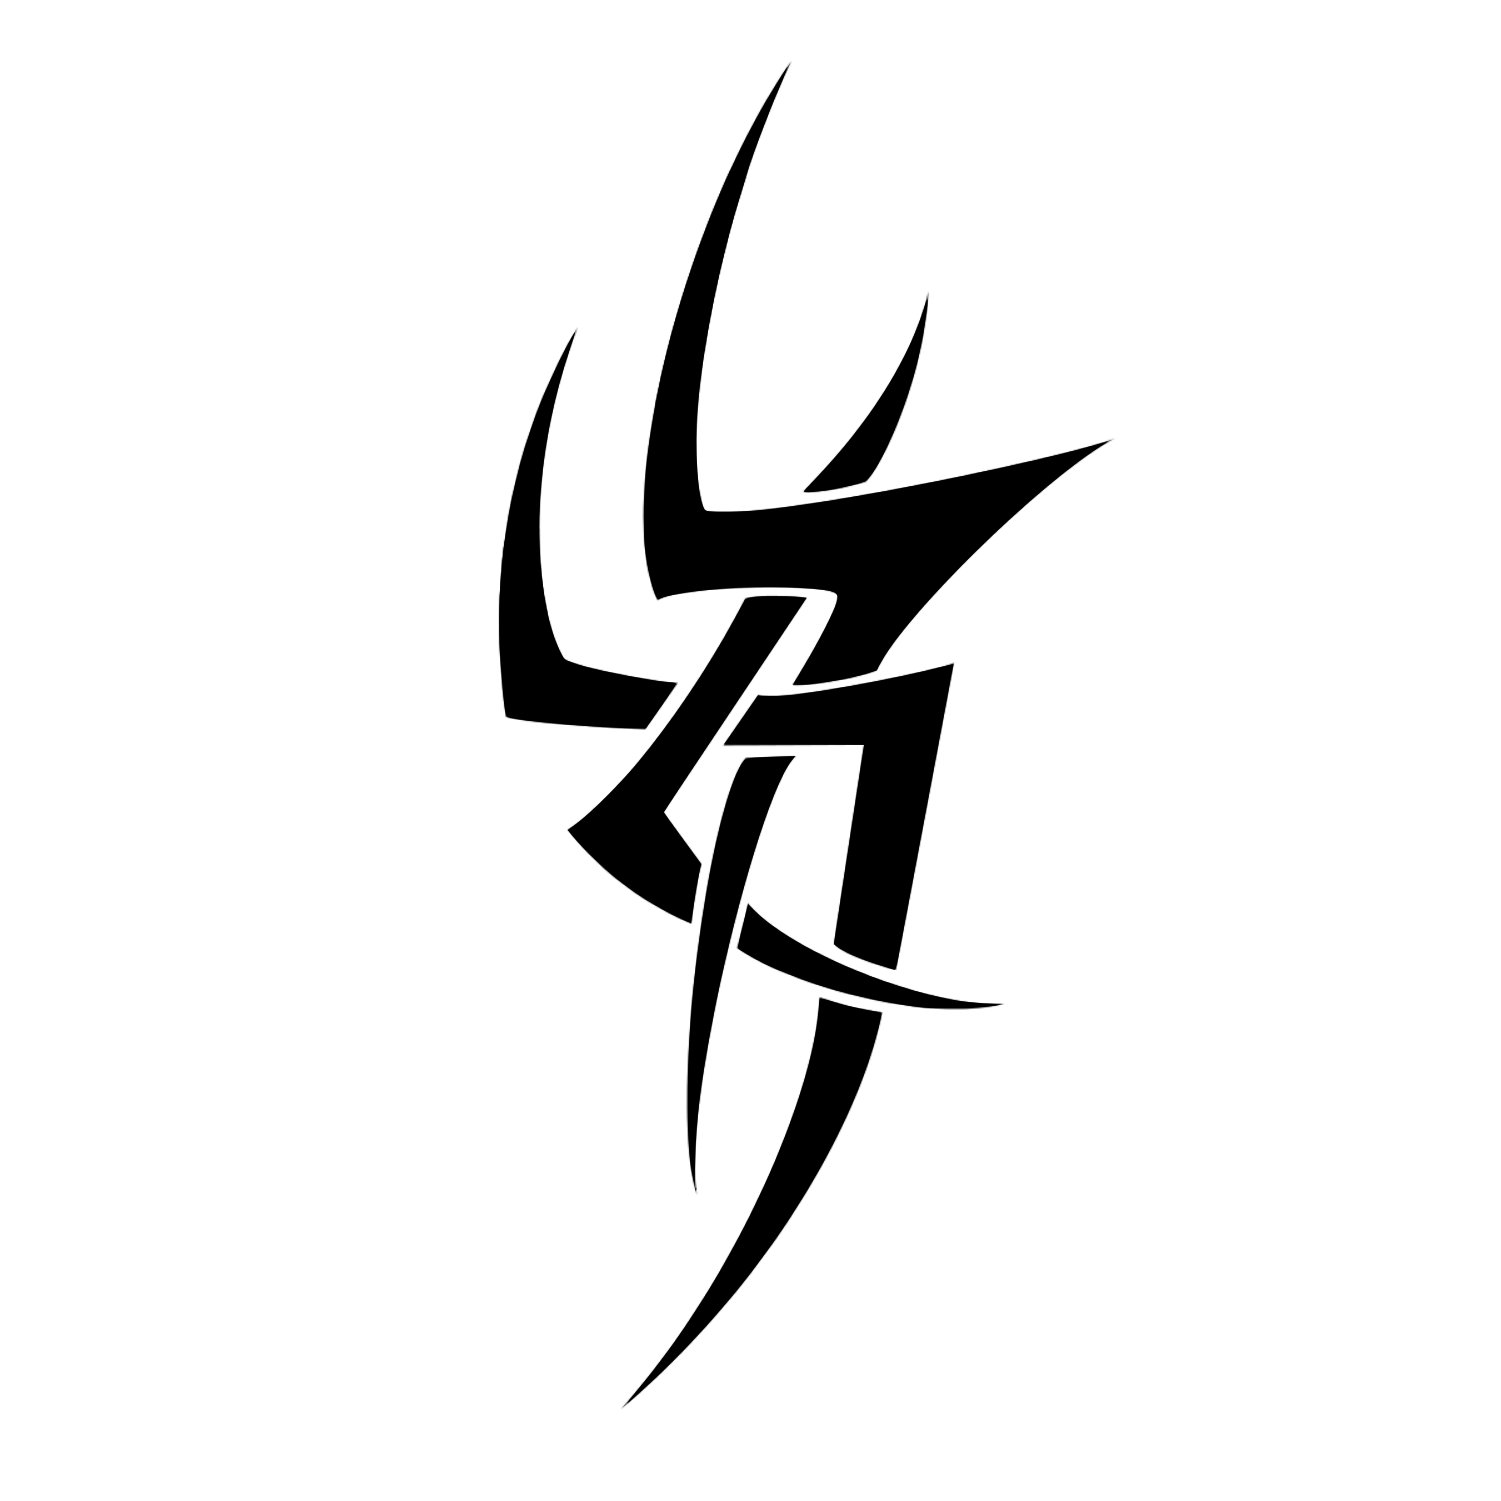 1501x1501 Tribal Tattoo Vector 2 (Svg, Png)